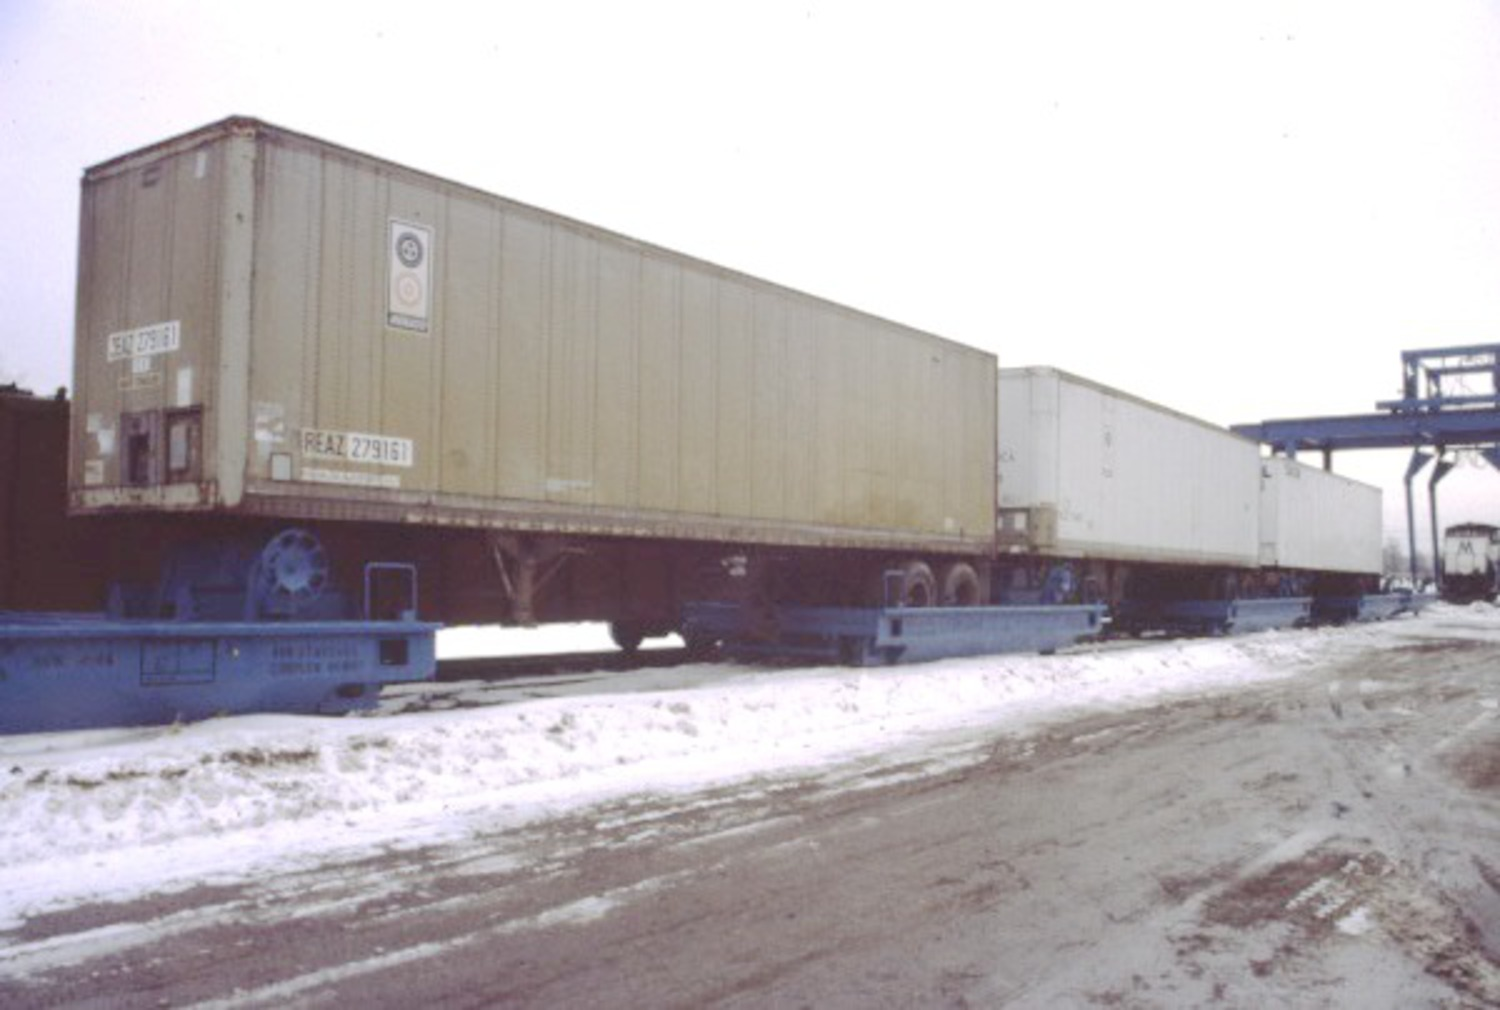 What the bogies look like when loaded with trailers. Photo by Albert Castelli c/o Steve Lynch's excellent LIRR history site.